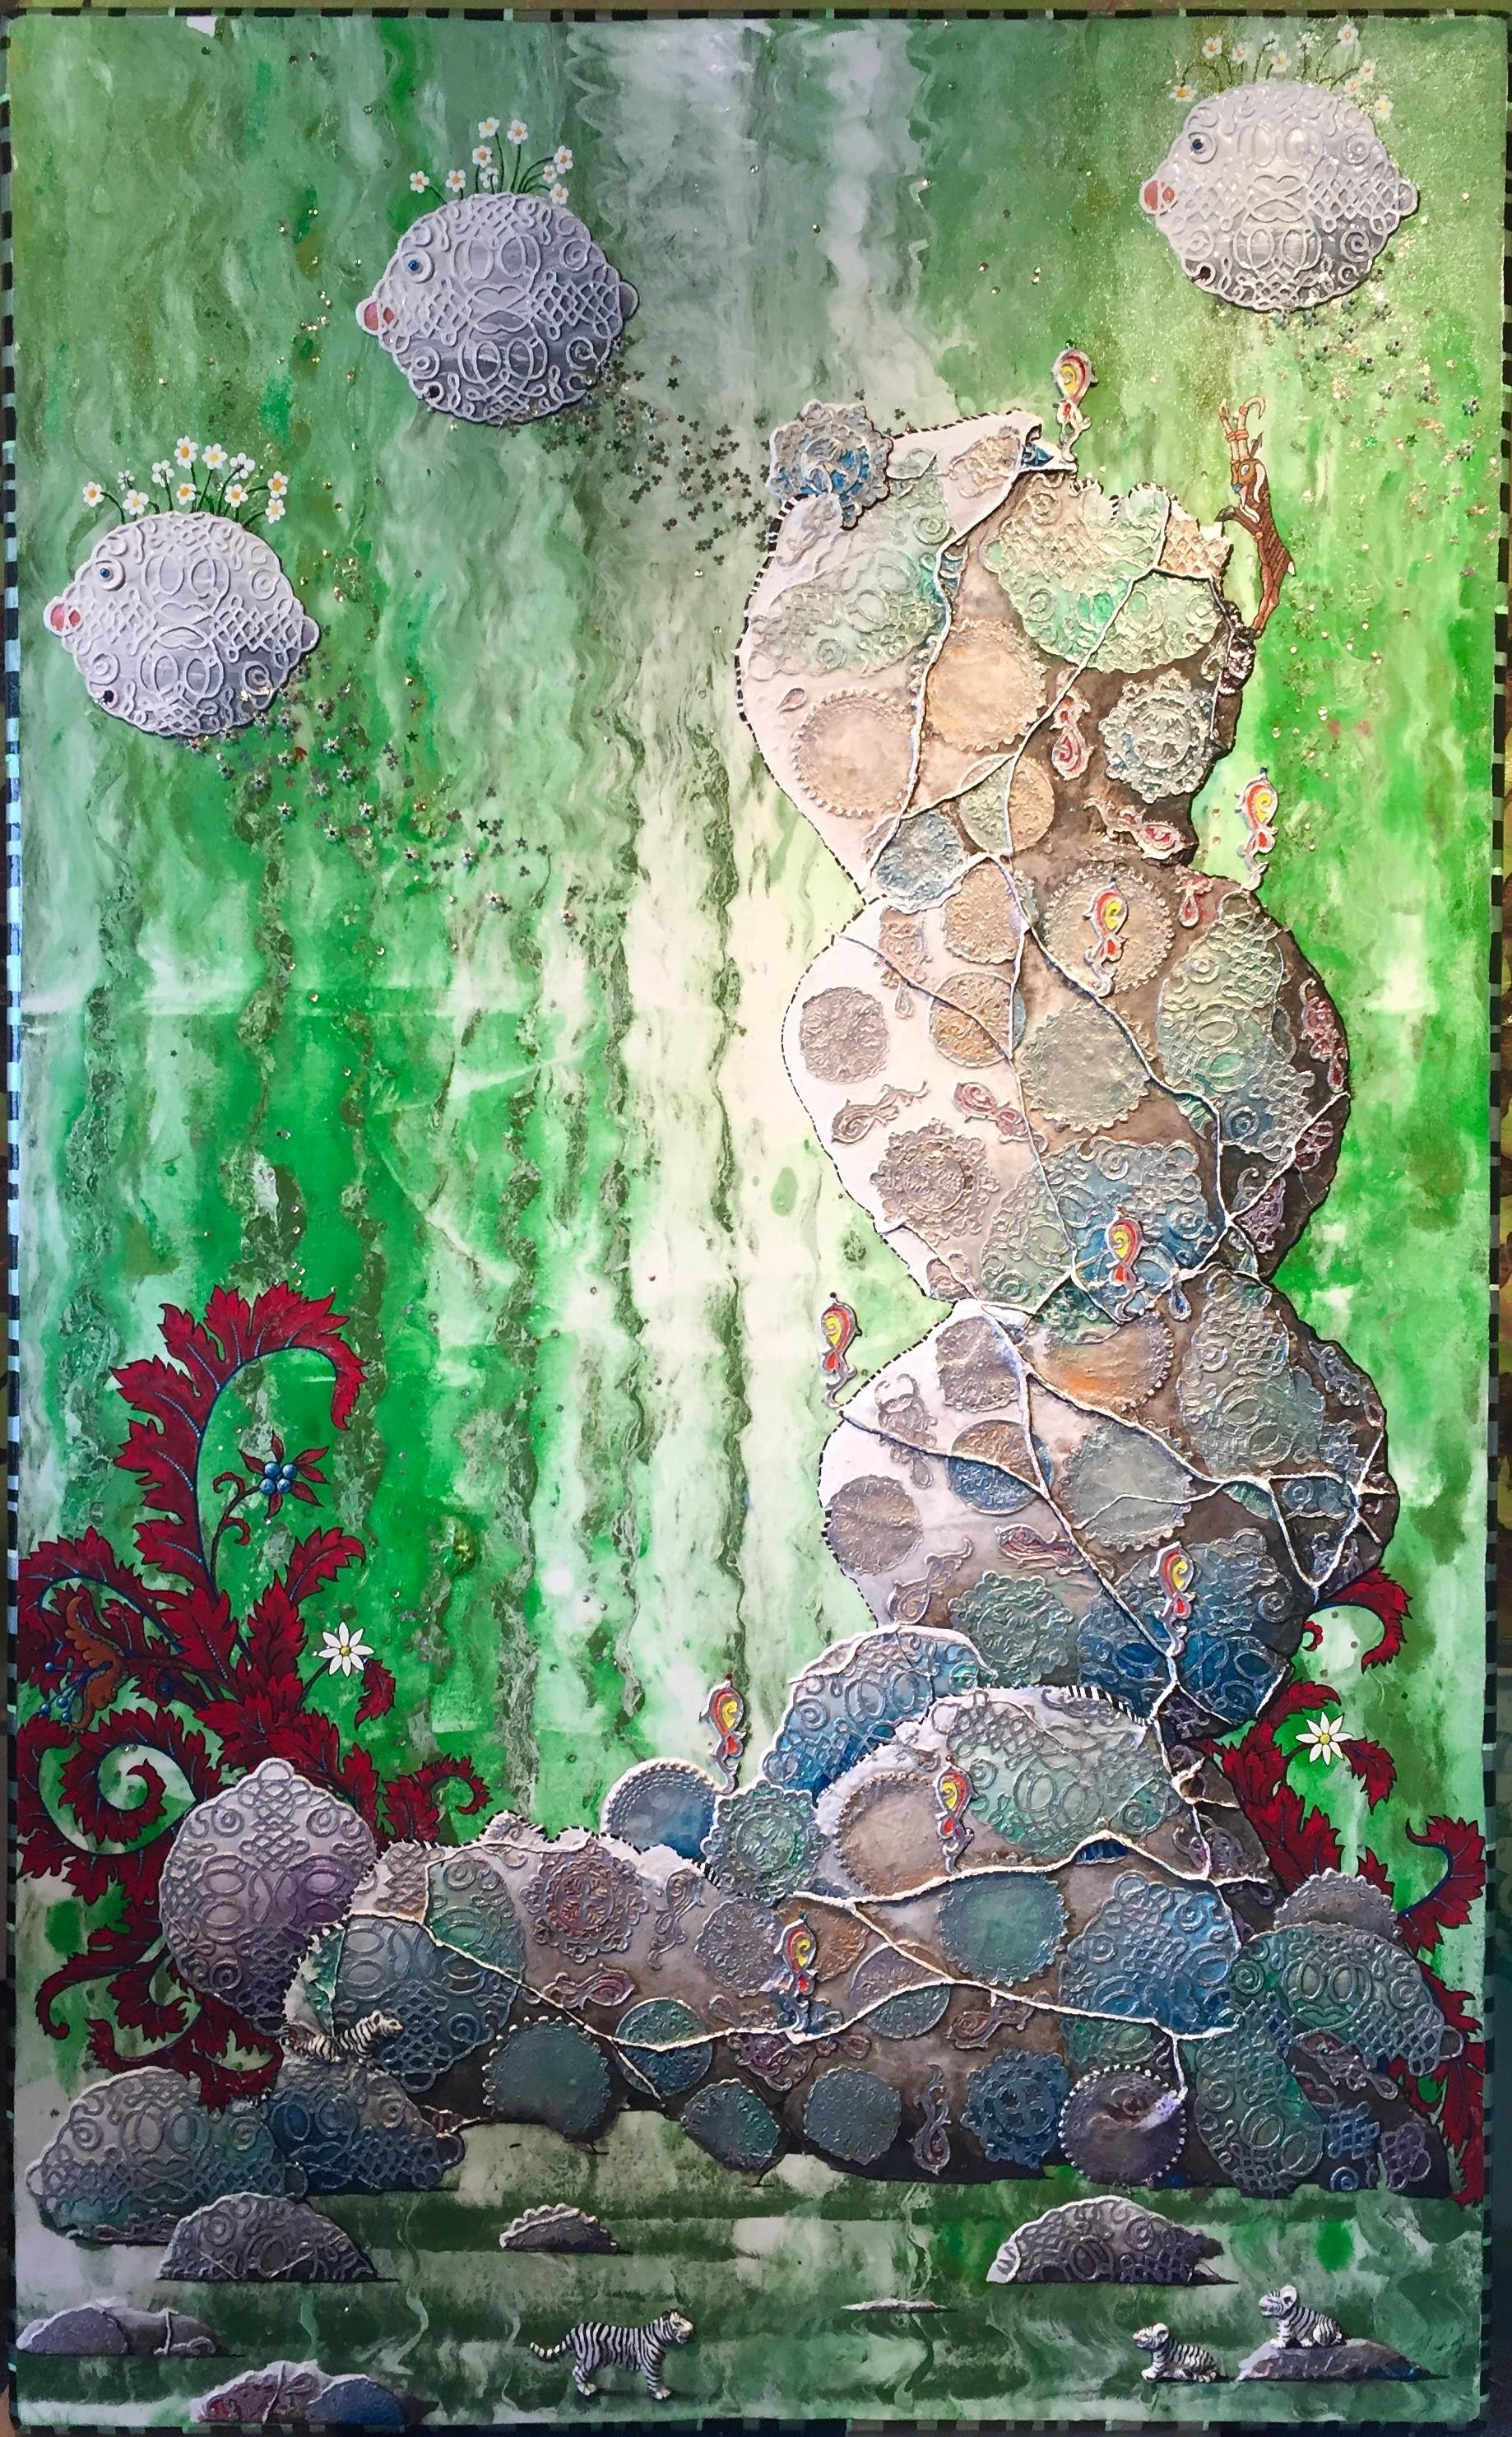 Expedition II, acrylic on canvas painting, underwater, green, fish, red, tigers